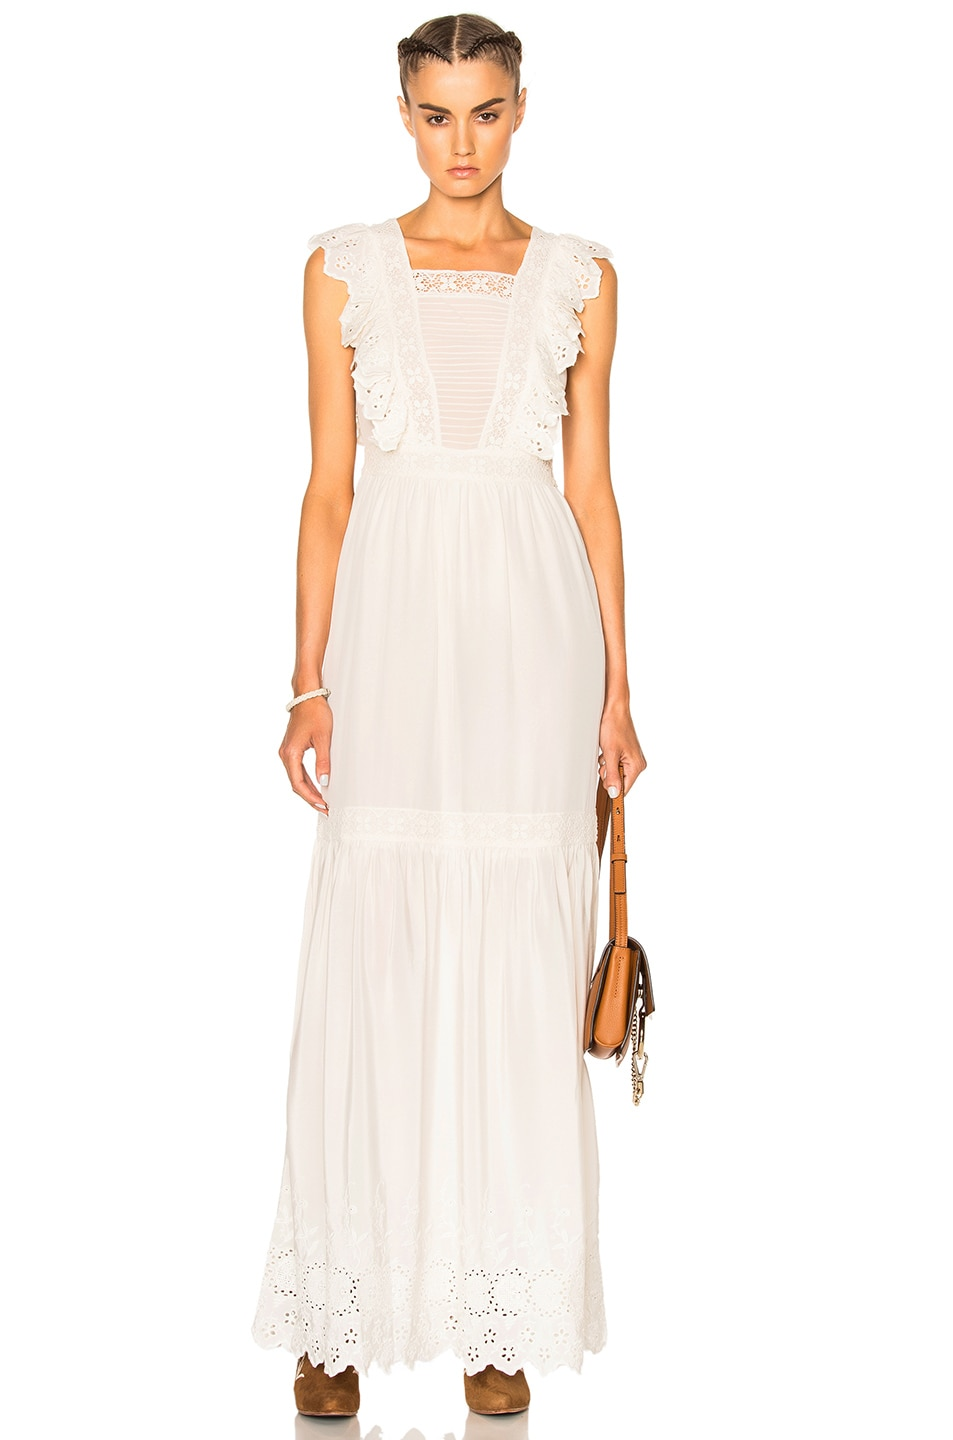 8d89112042 Image 1 of Ulla Johnson Amelie Dress in Snow